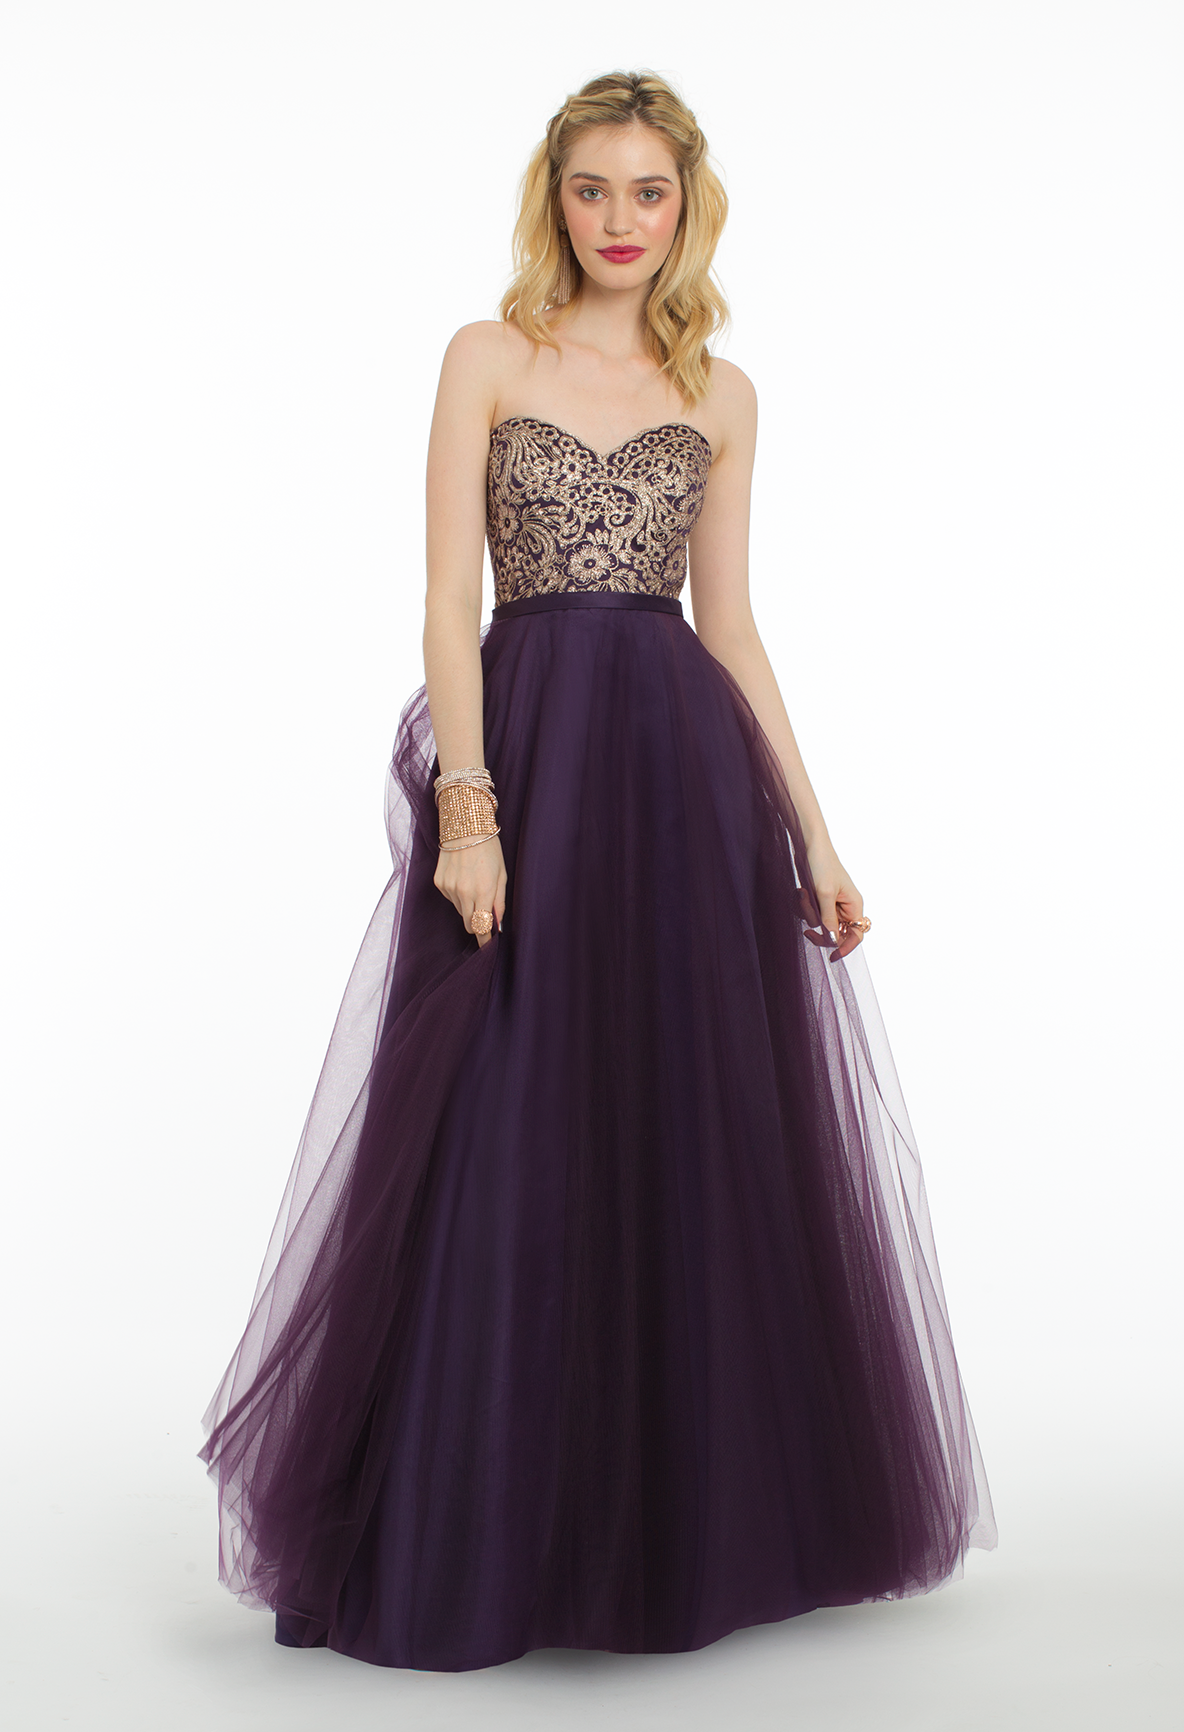 Step into the spotlight in this beautiful evening gown the